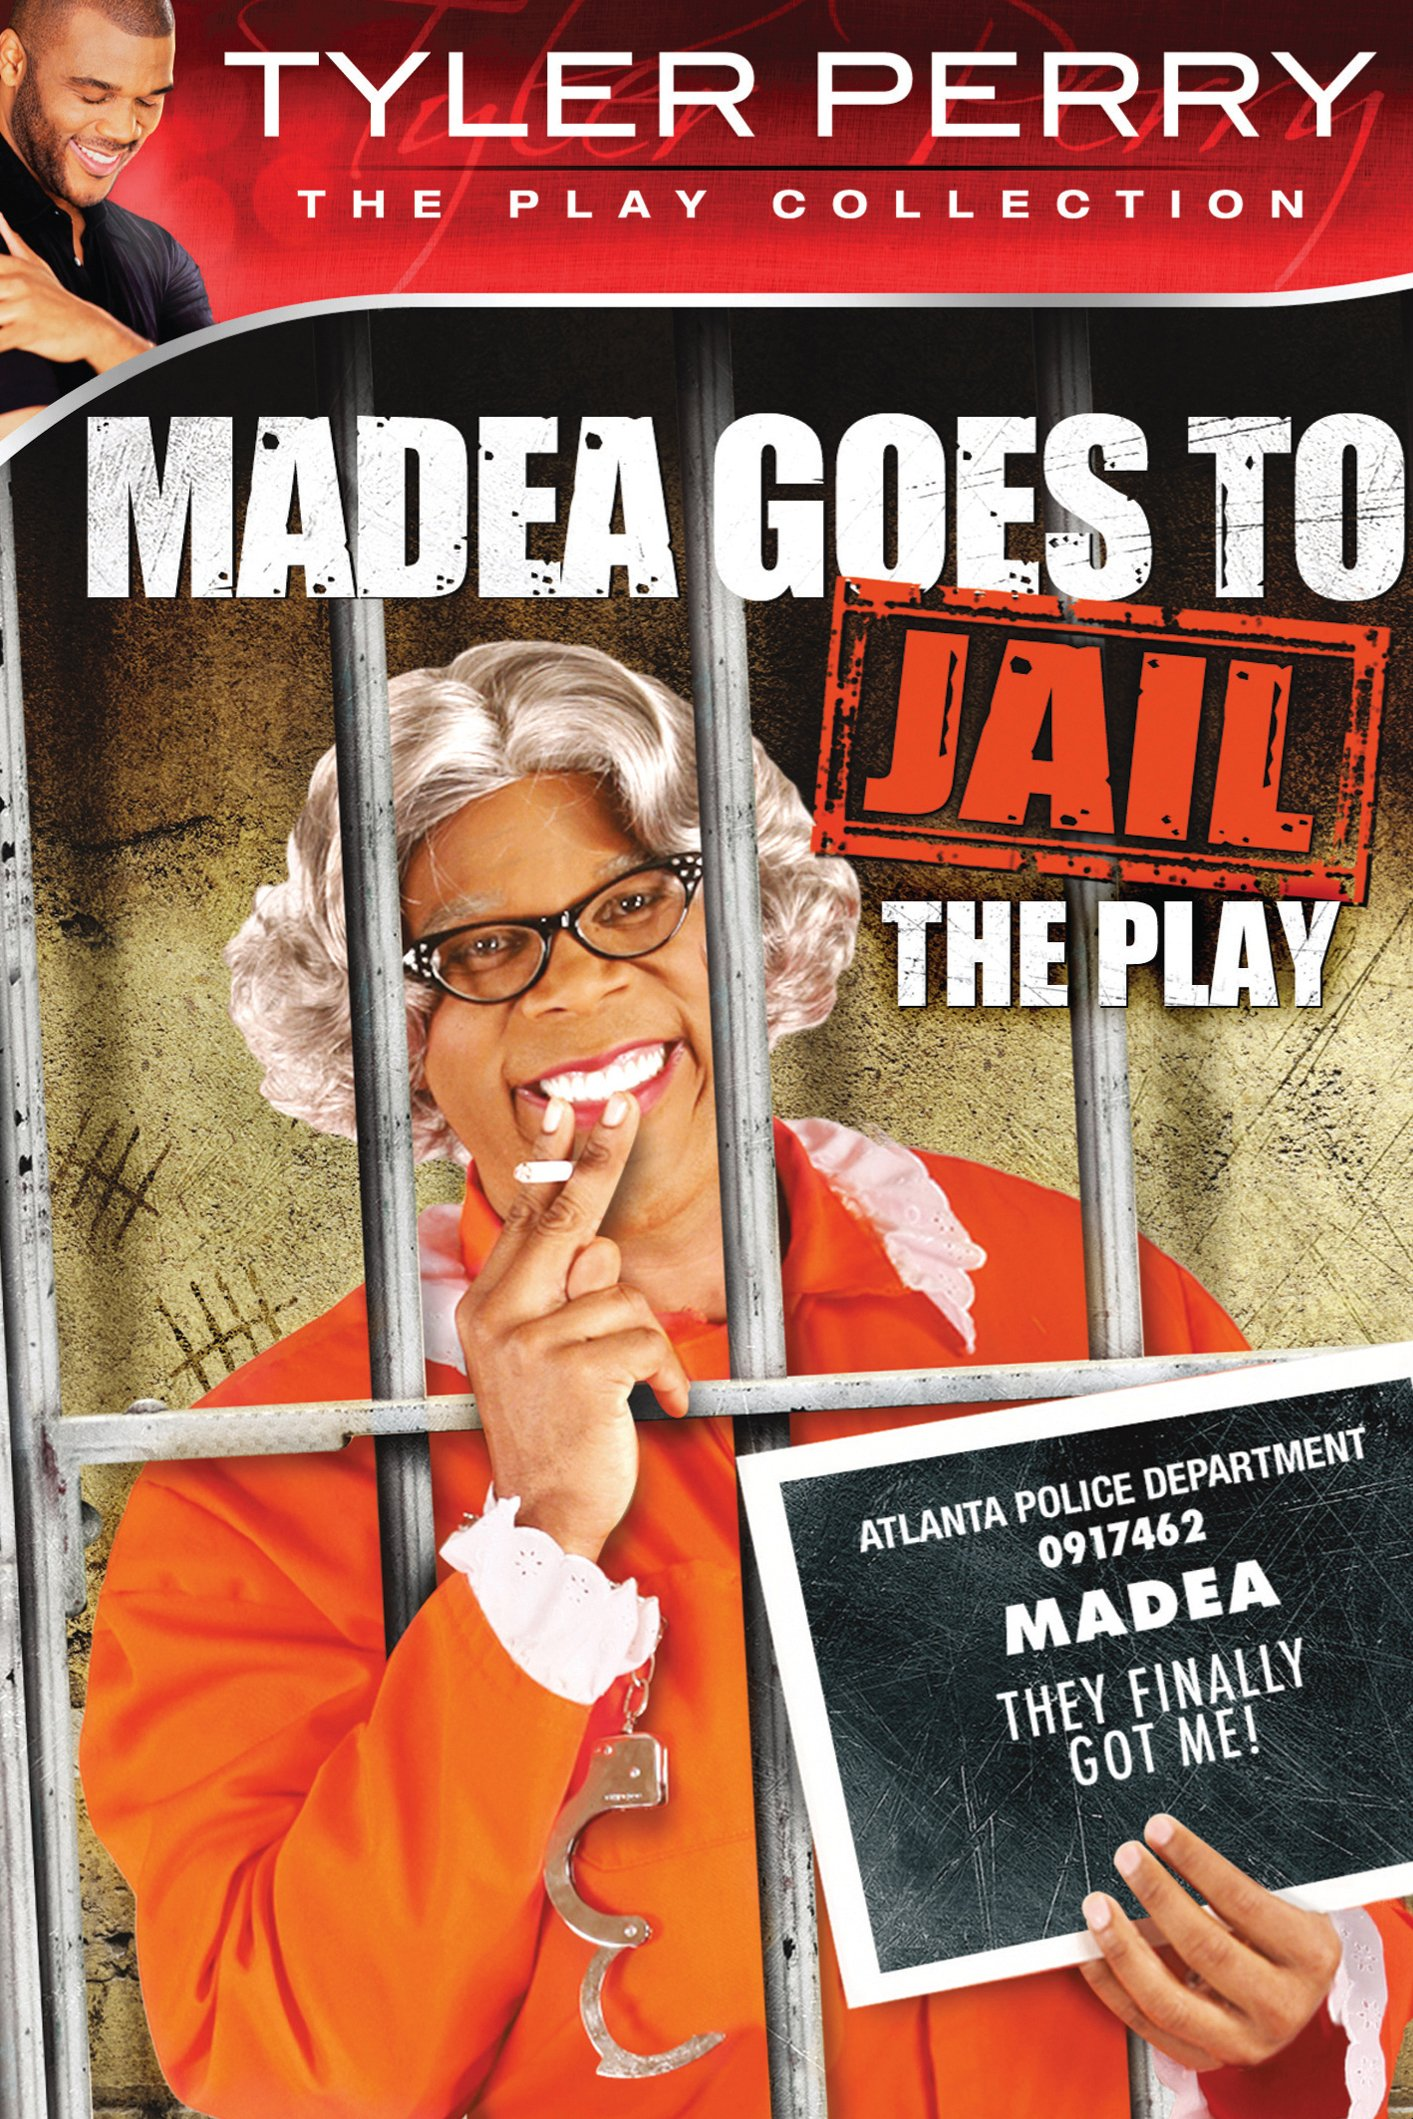 watch madea goes to jail online free without downloading